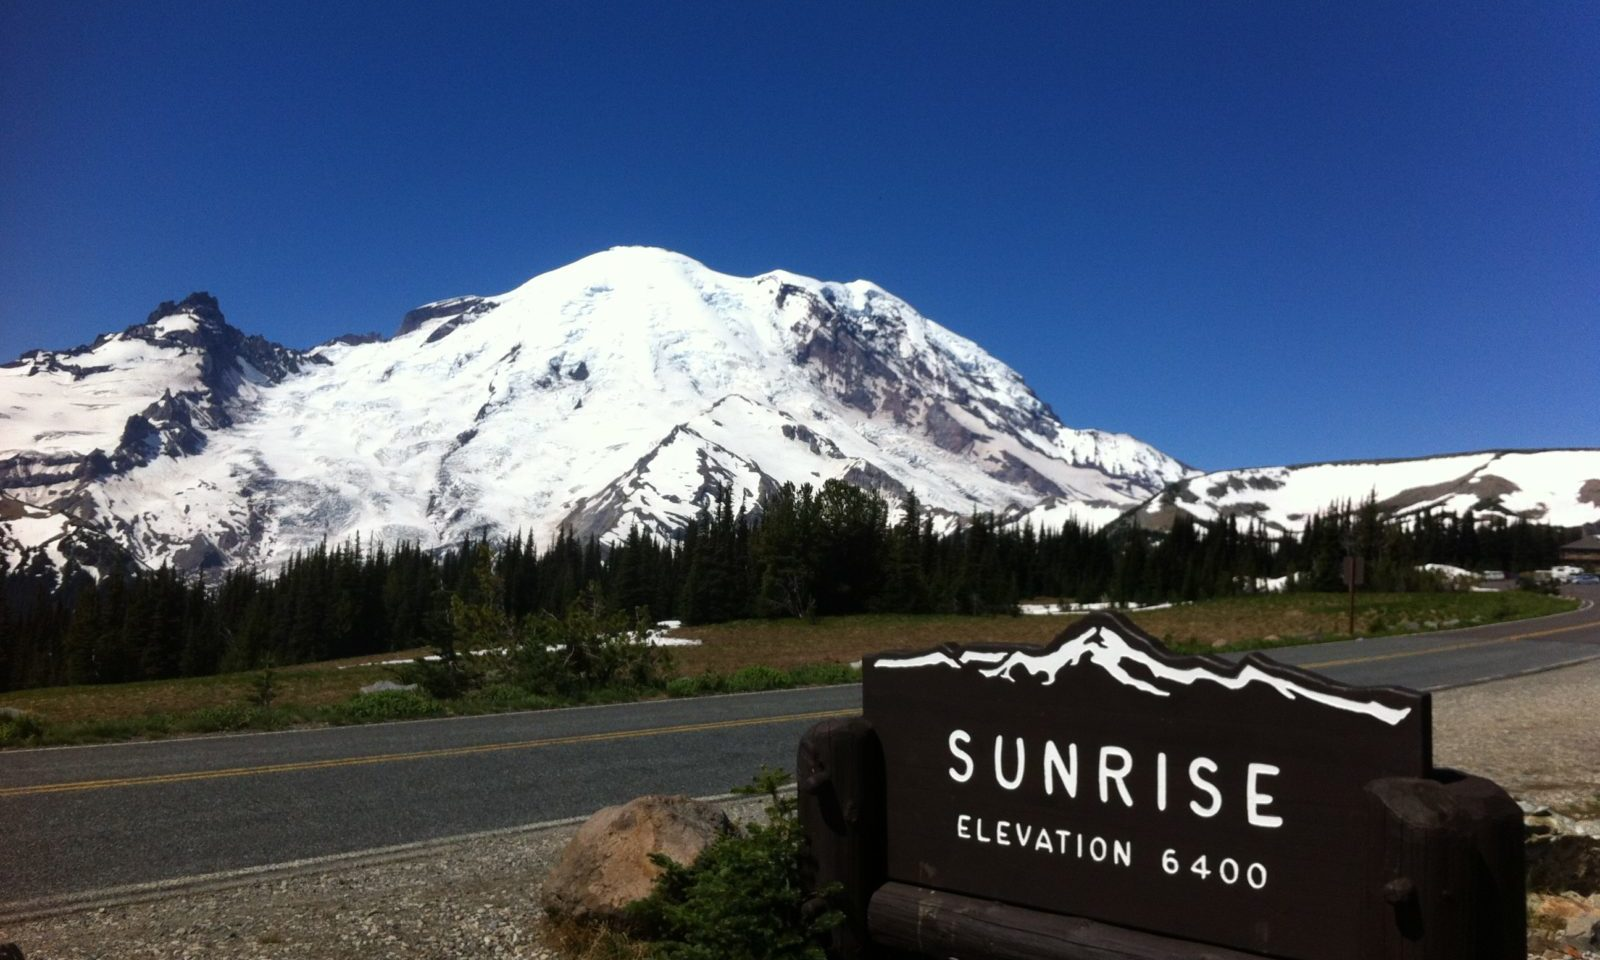 Mt. Rainier National Park (4,392m), 2013